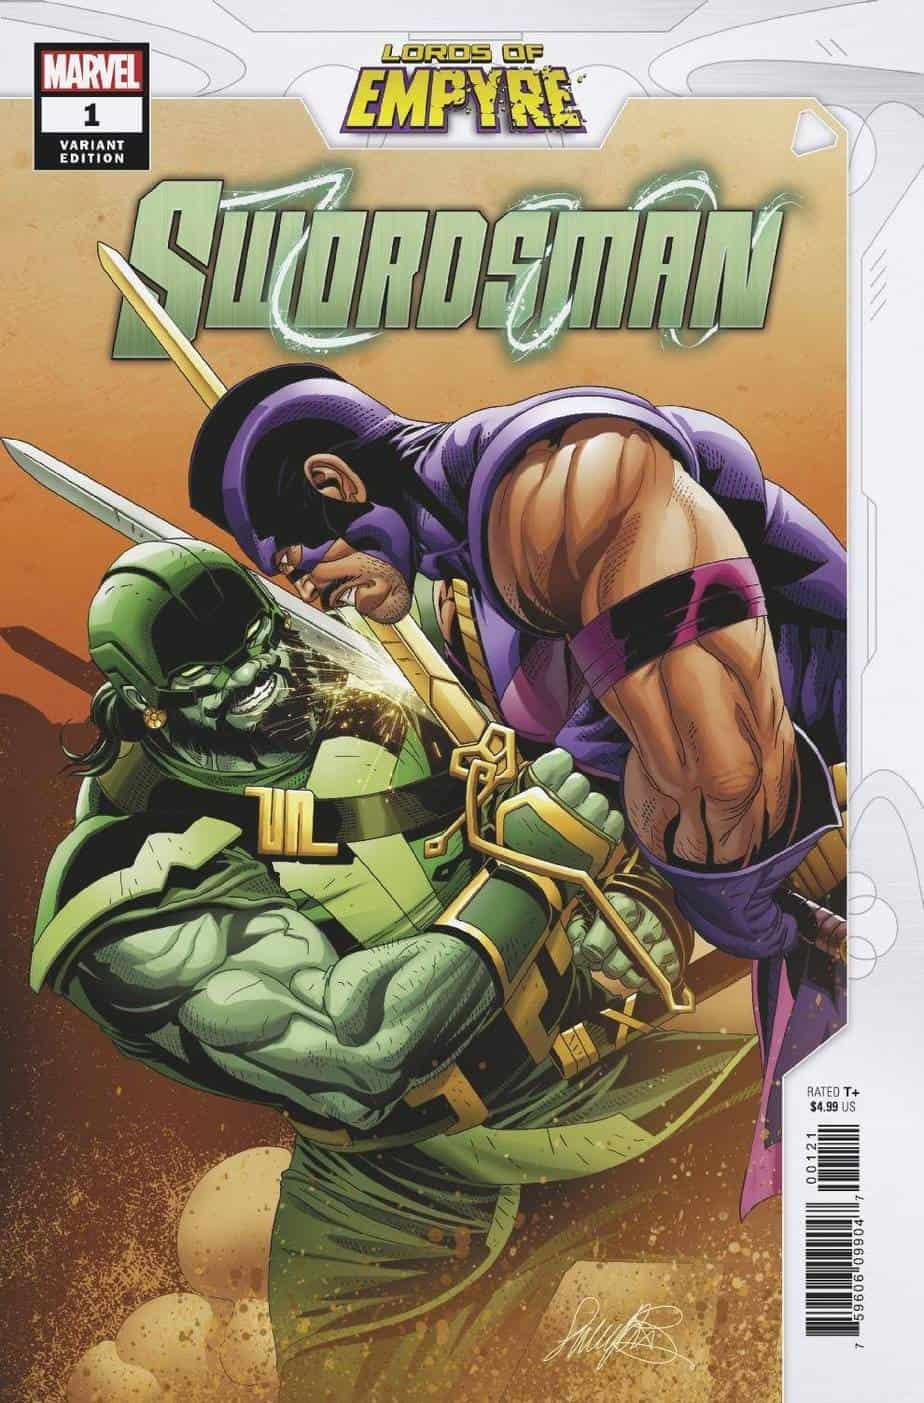 LORDS OF EMPYRE SWORDSMAN #1 - Cover B